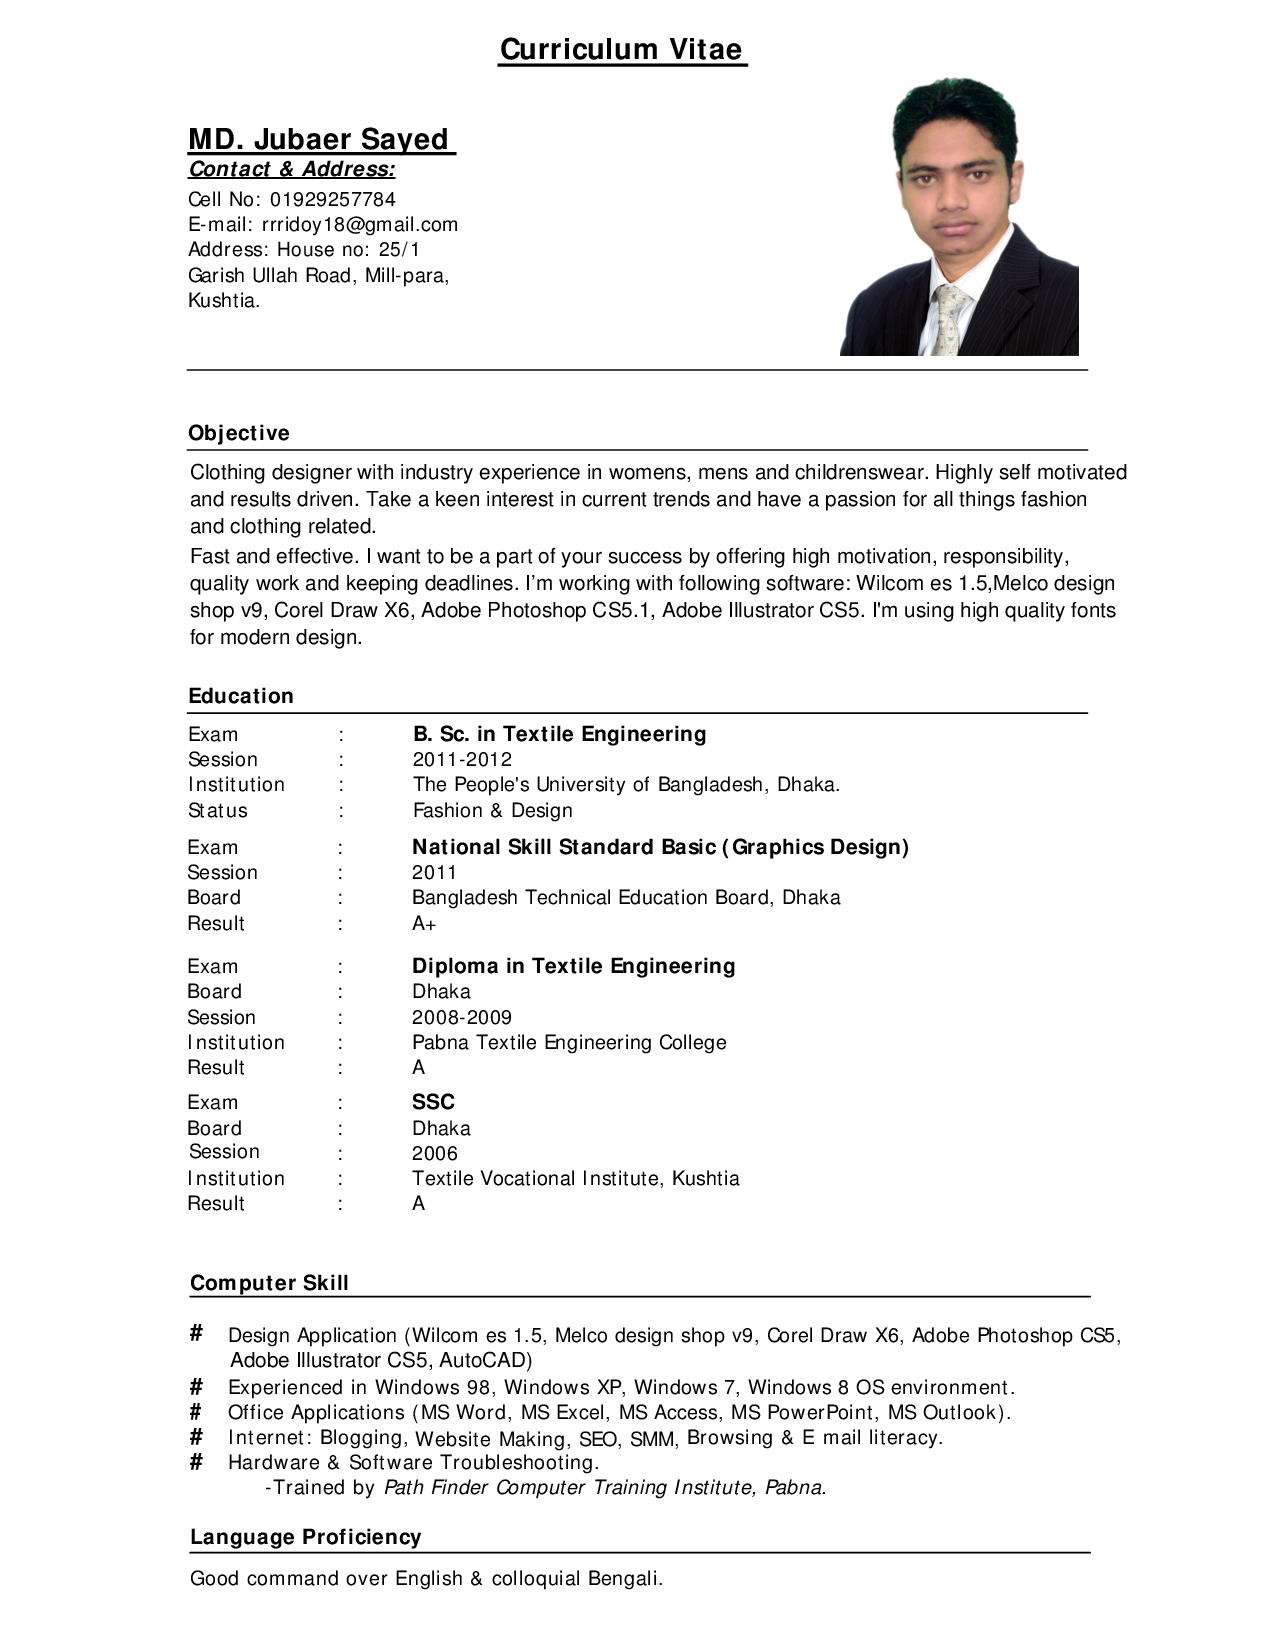 Elegant Example Resume, Computer Skills And Education For Curriculum Vitae Resume  Samples Pdf: Curriculum Vitae Resume Samples Pdf